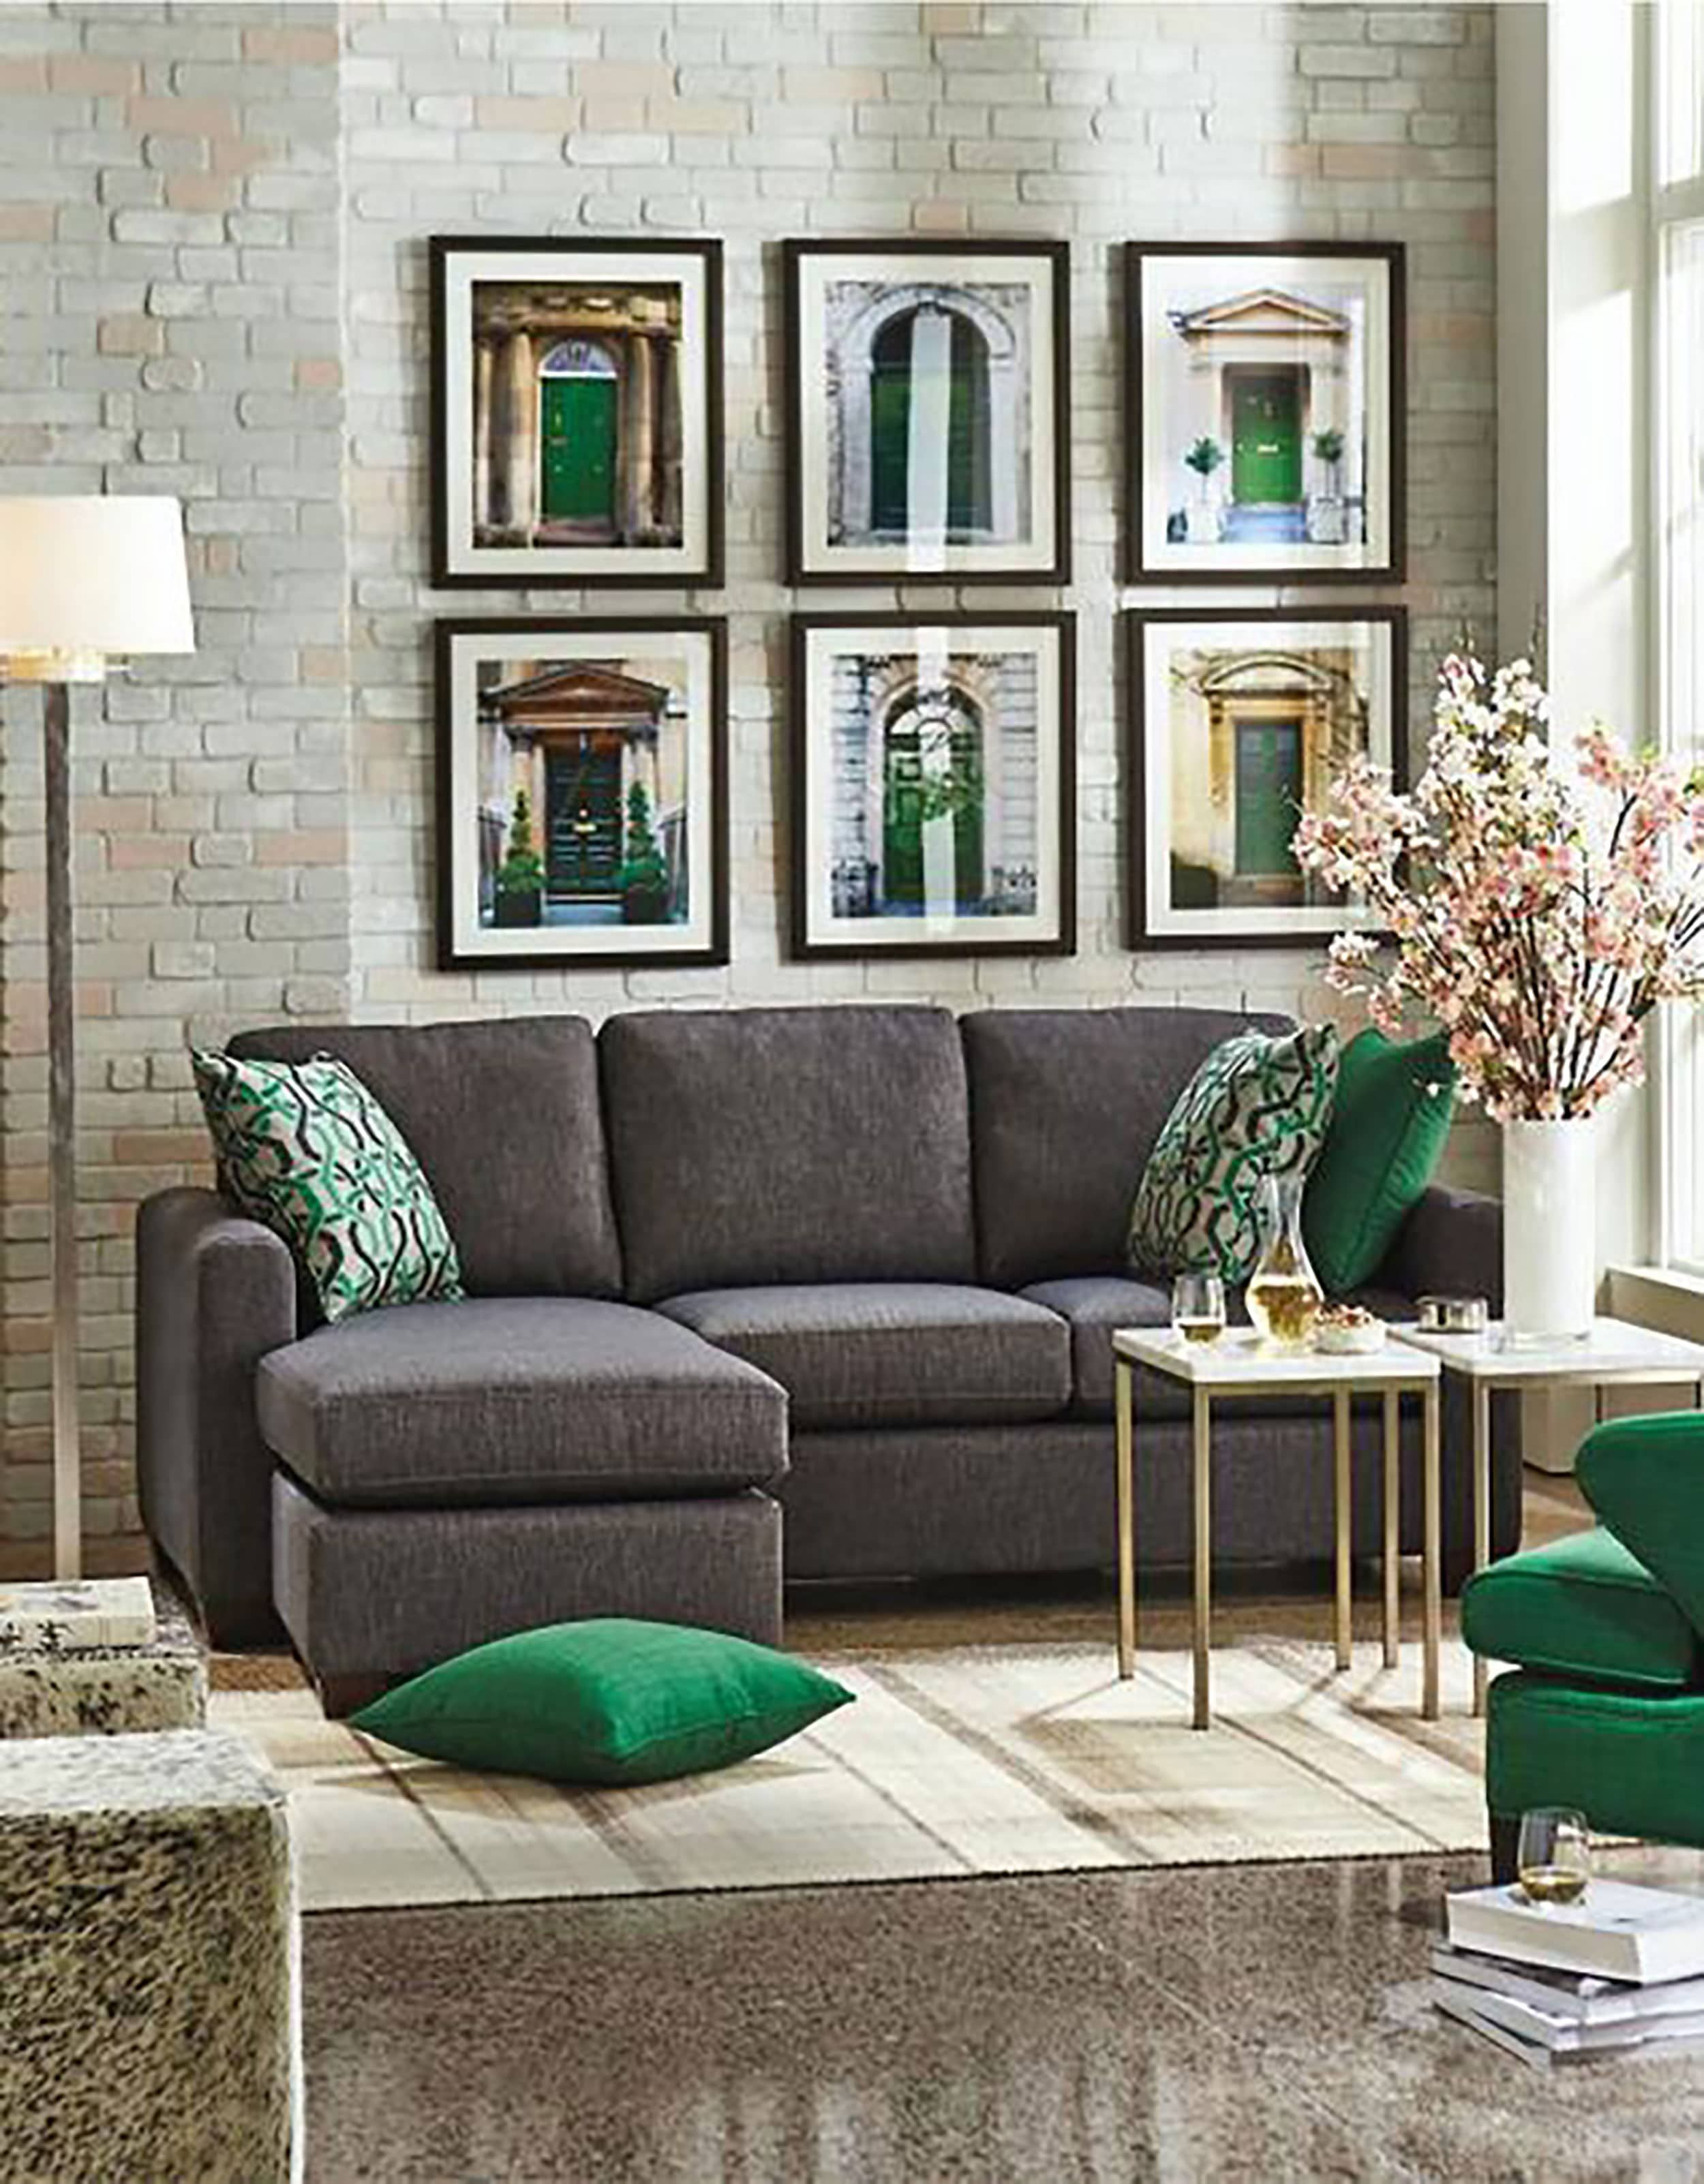 Design Mistakes The 3 Biggest Color Palette Missteps How To Get It Right Emily Henderson Teal Living Rooms Living Room Grey Living Room Green